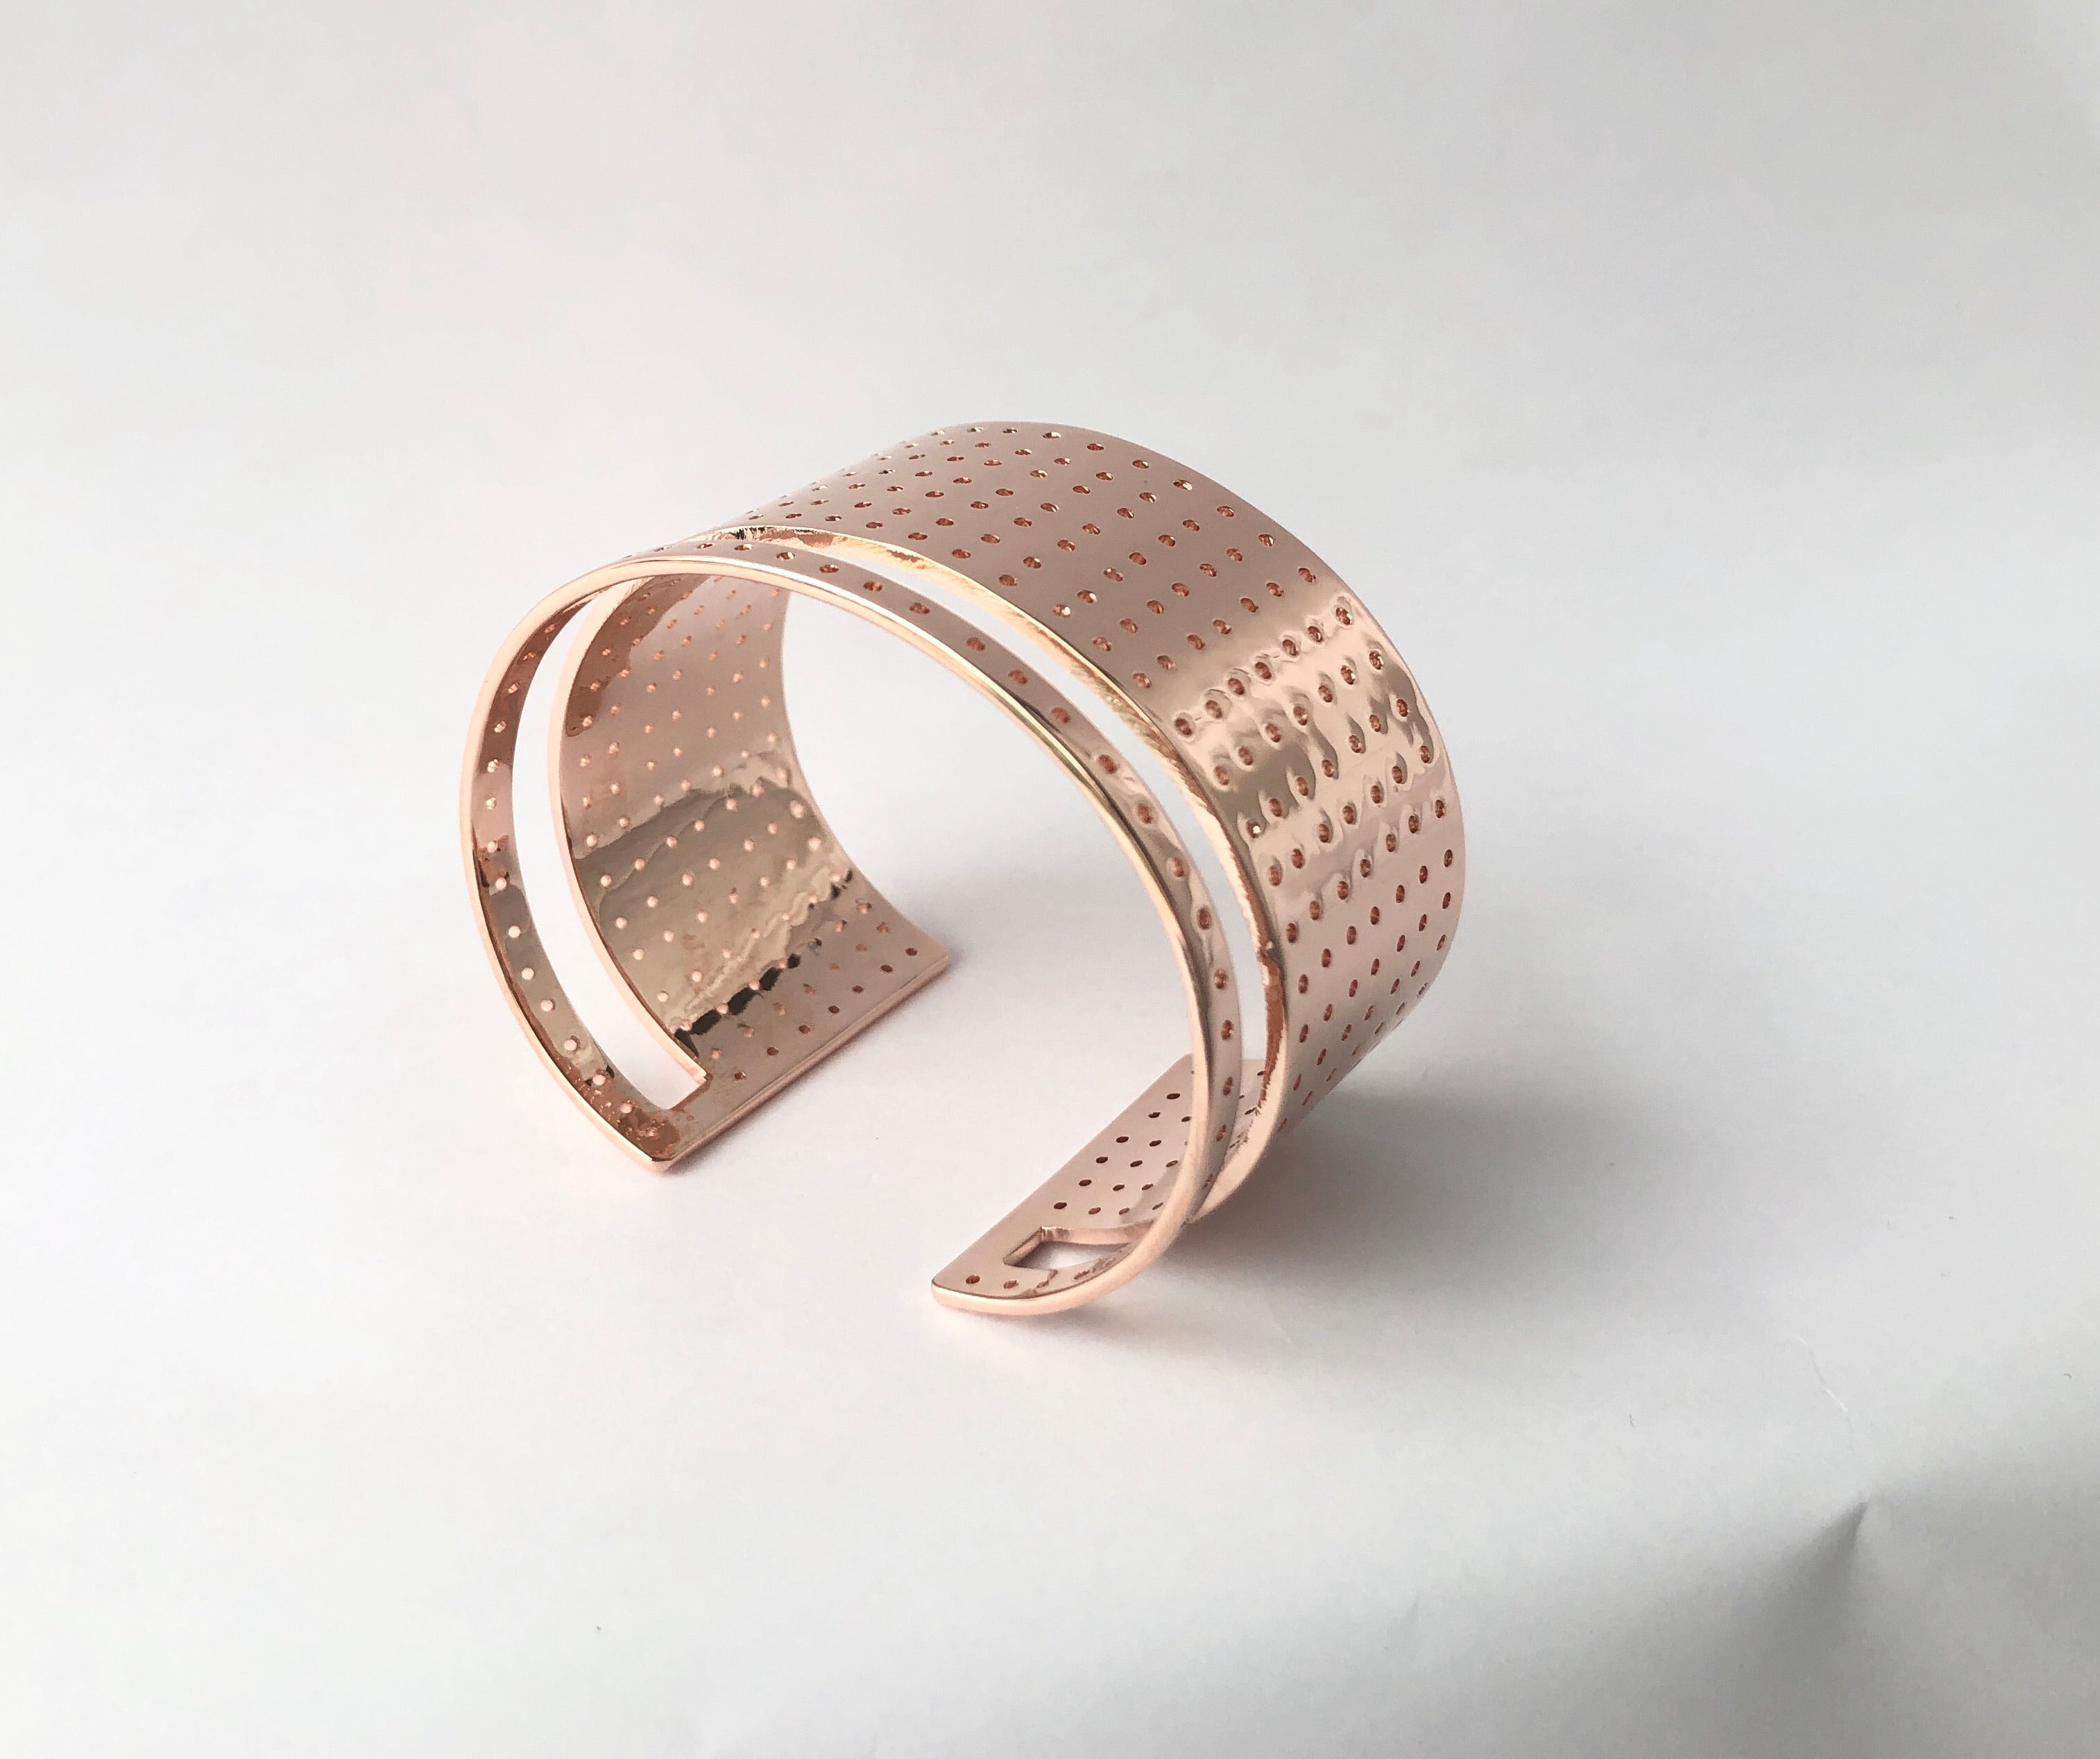 rosegold jewellery statement classic accessory rings sustainable brand